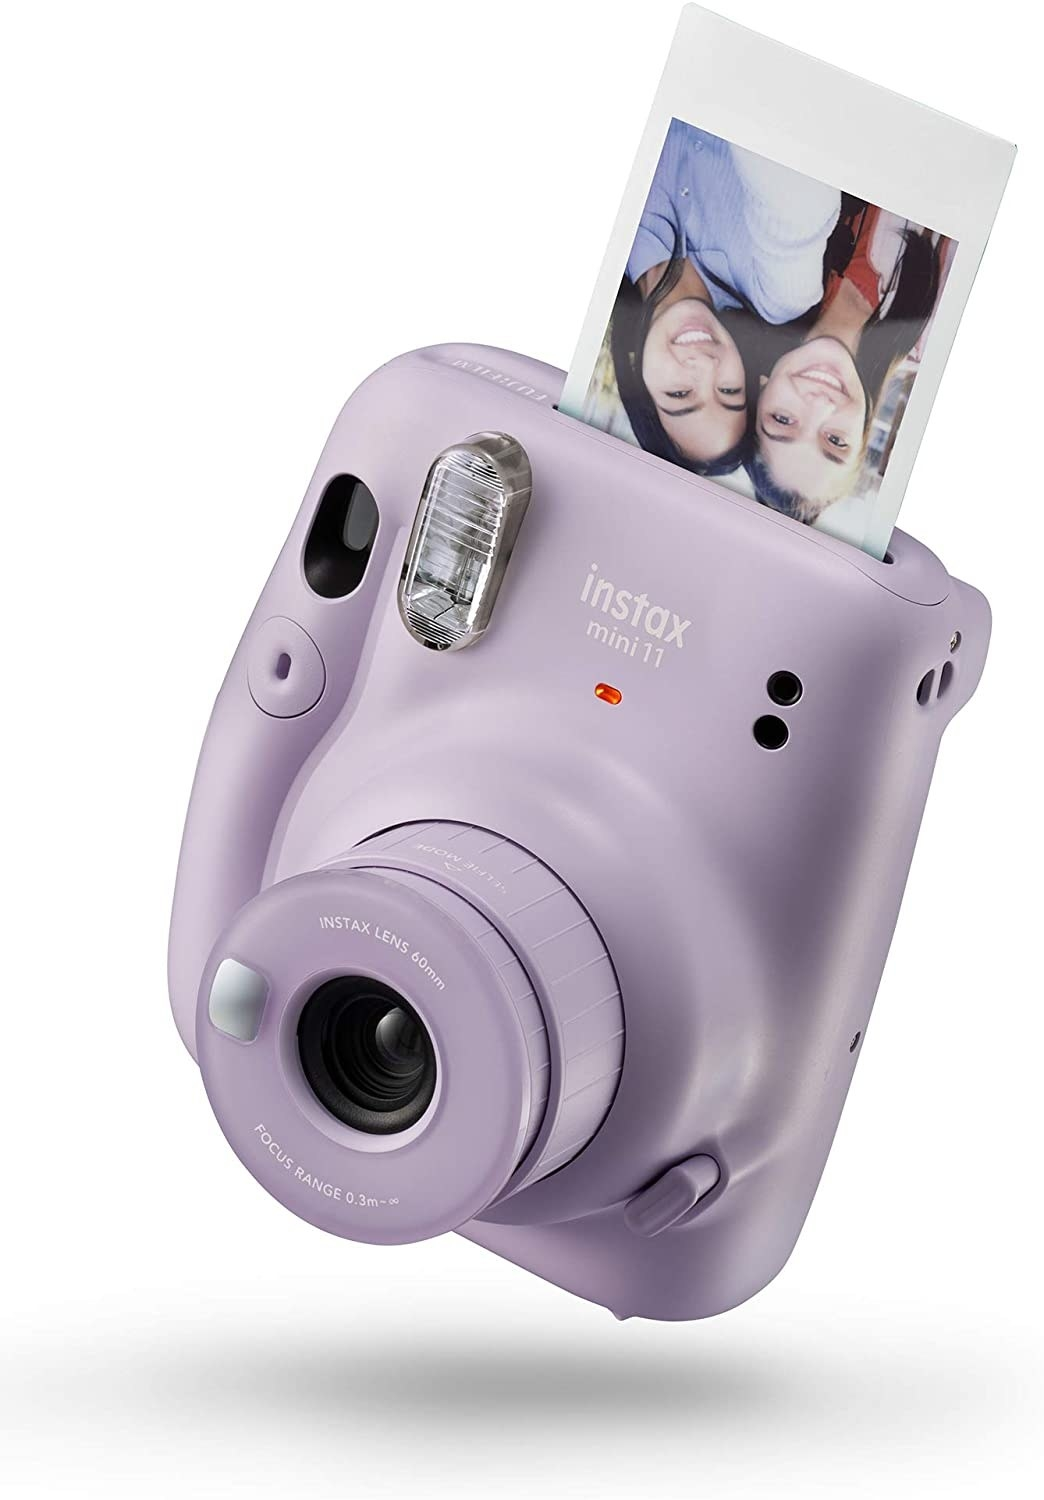 The camera in purple with a photo emerging